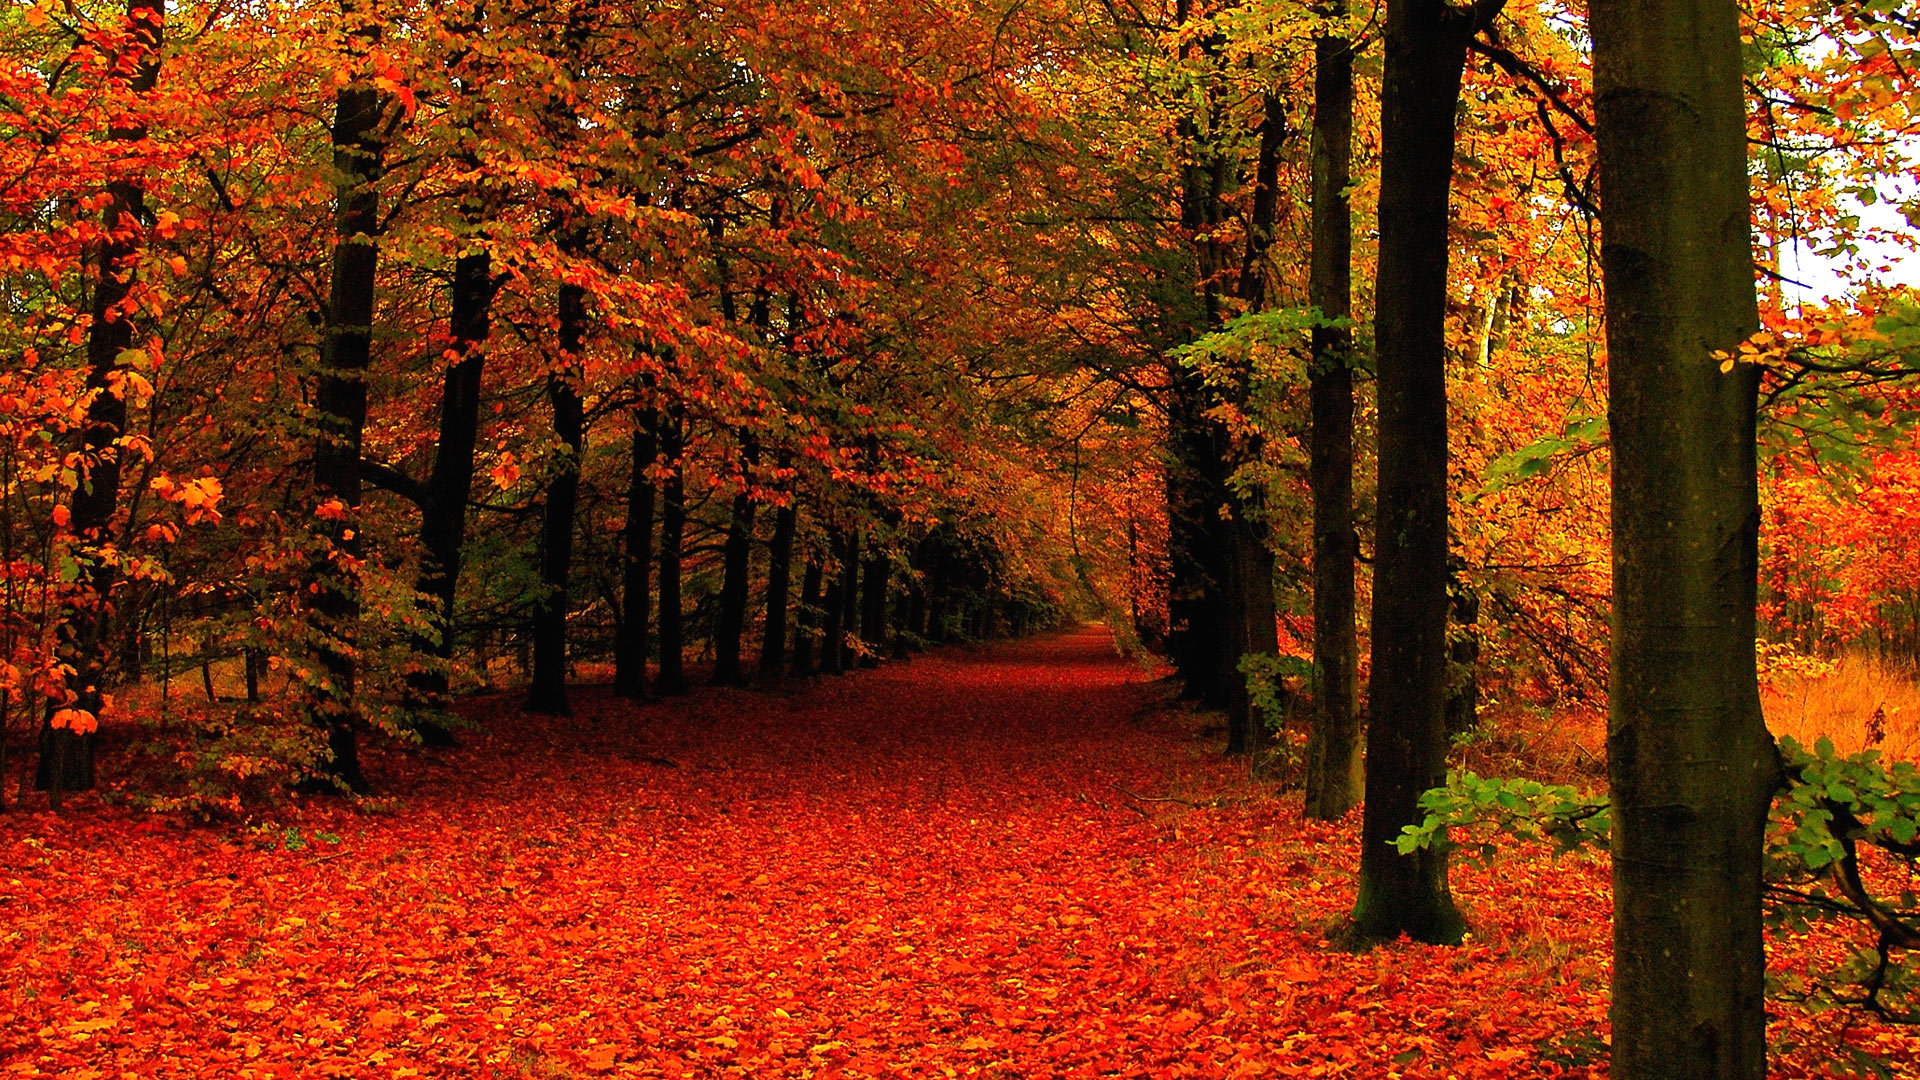 Hd 1080p Fall Wallpaper 79 Images: Cute Autumn Leaves HD Wallpapers